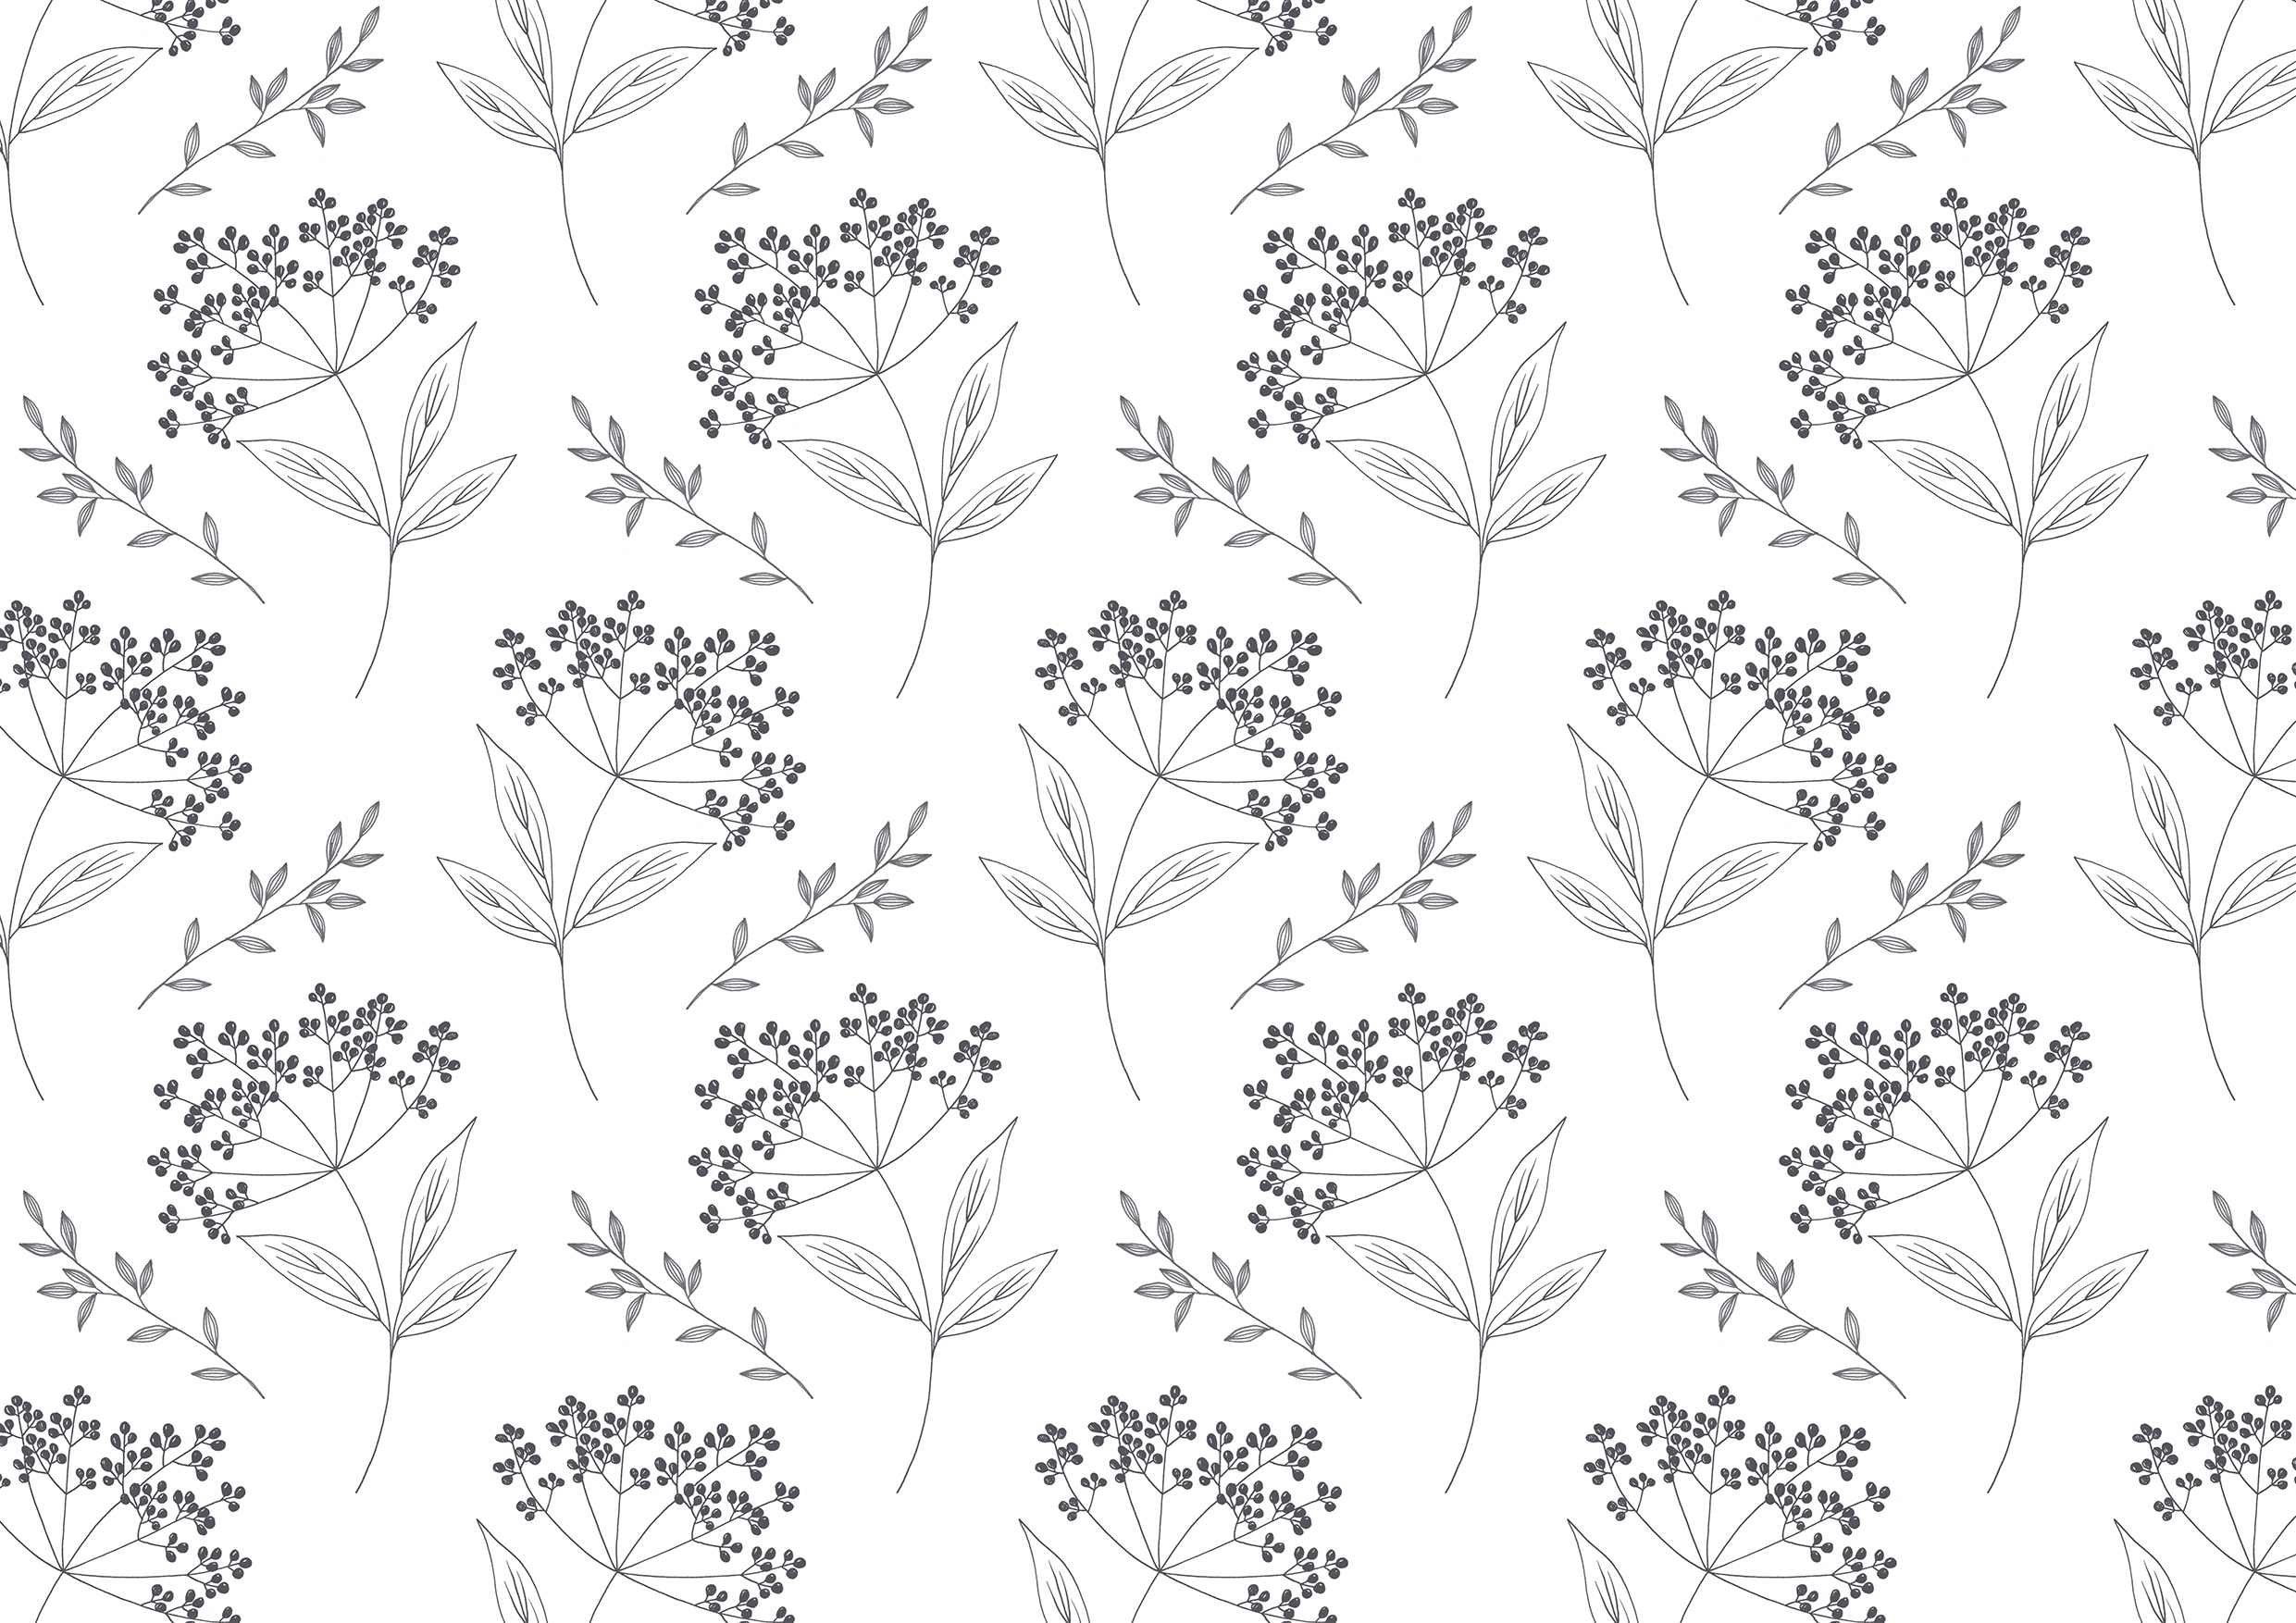 elderberry pattern.jpg